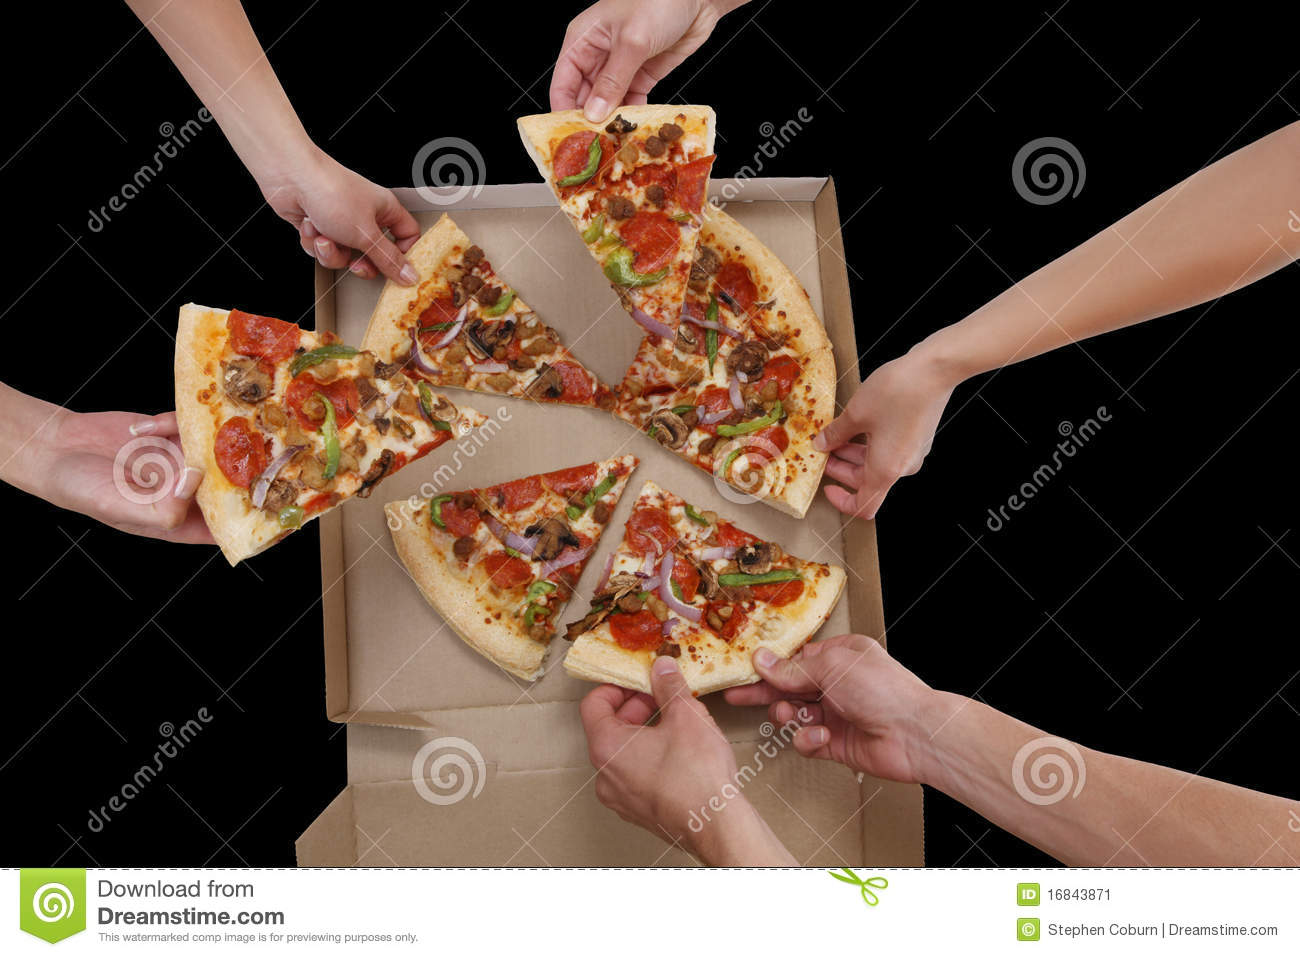 People Eating Pizza Stock Image   Image  16843871